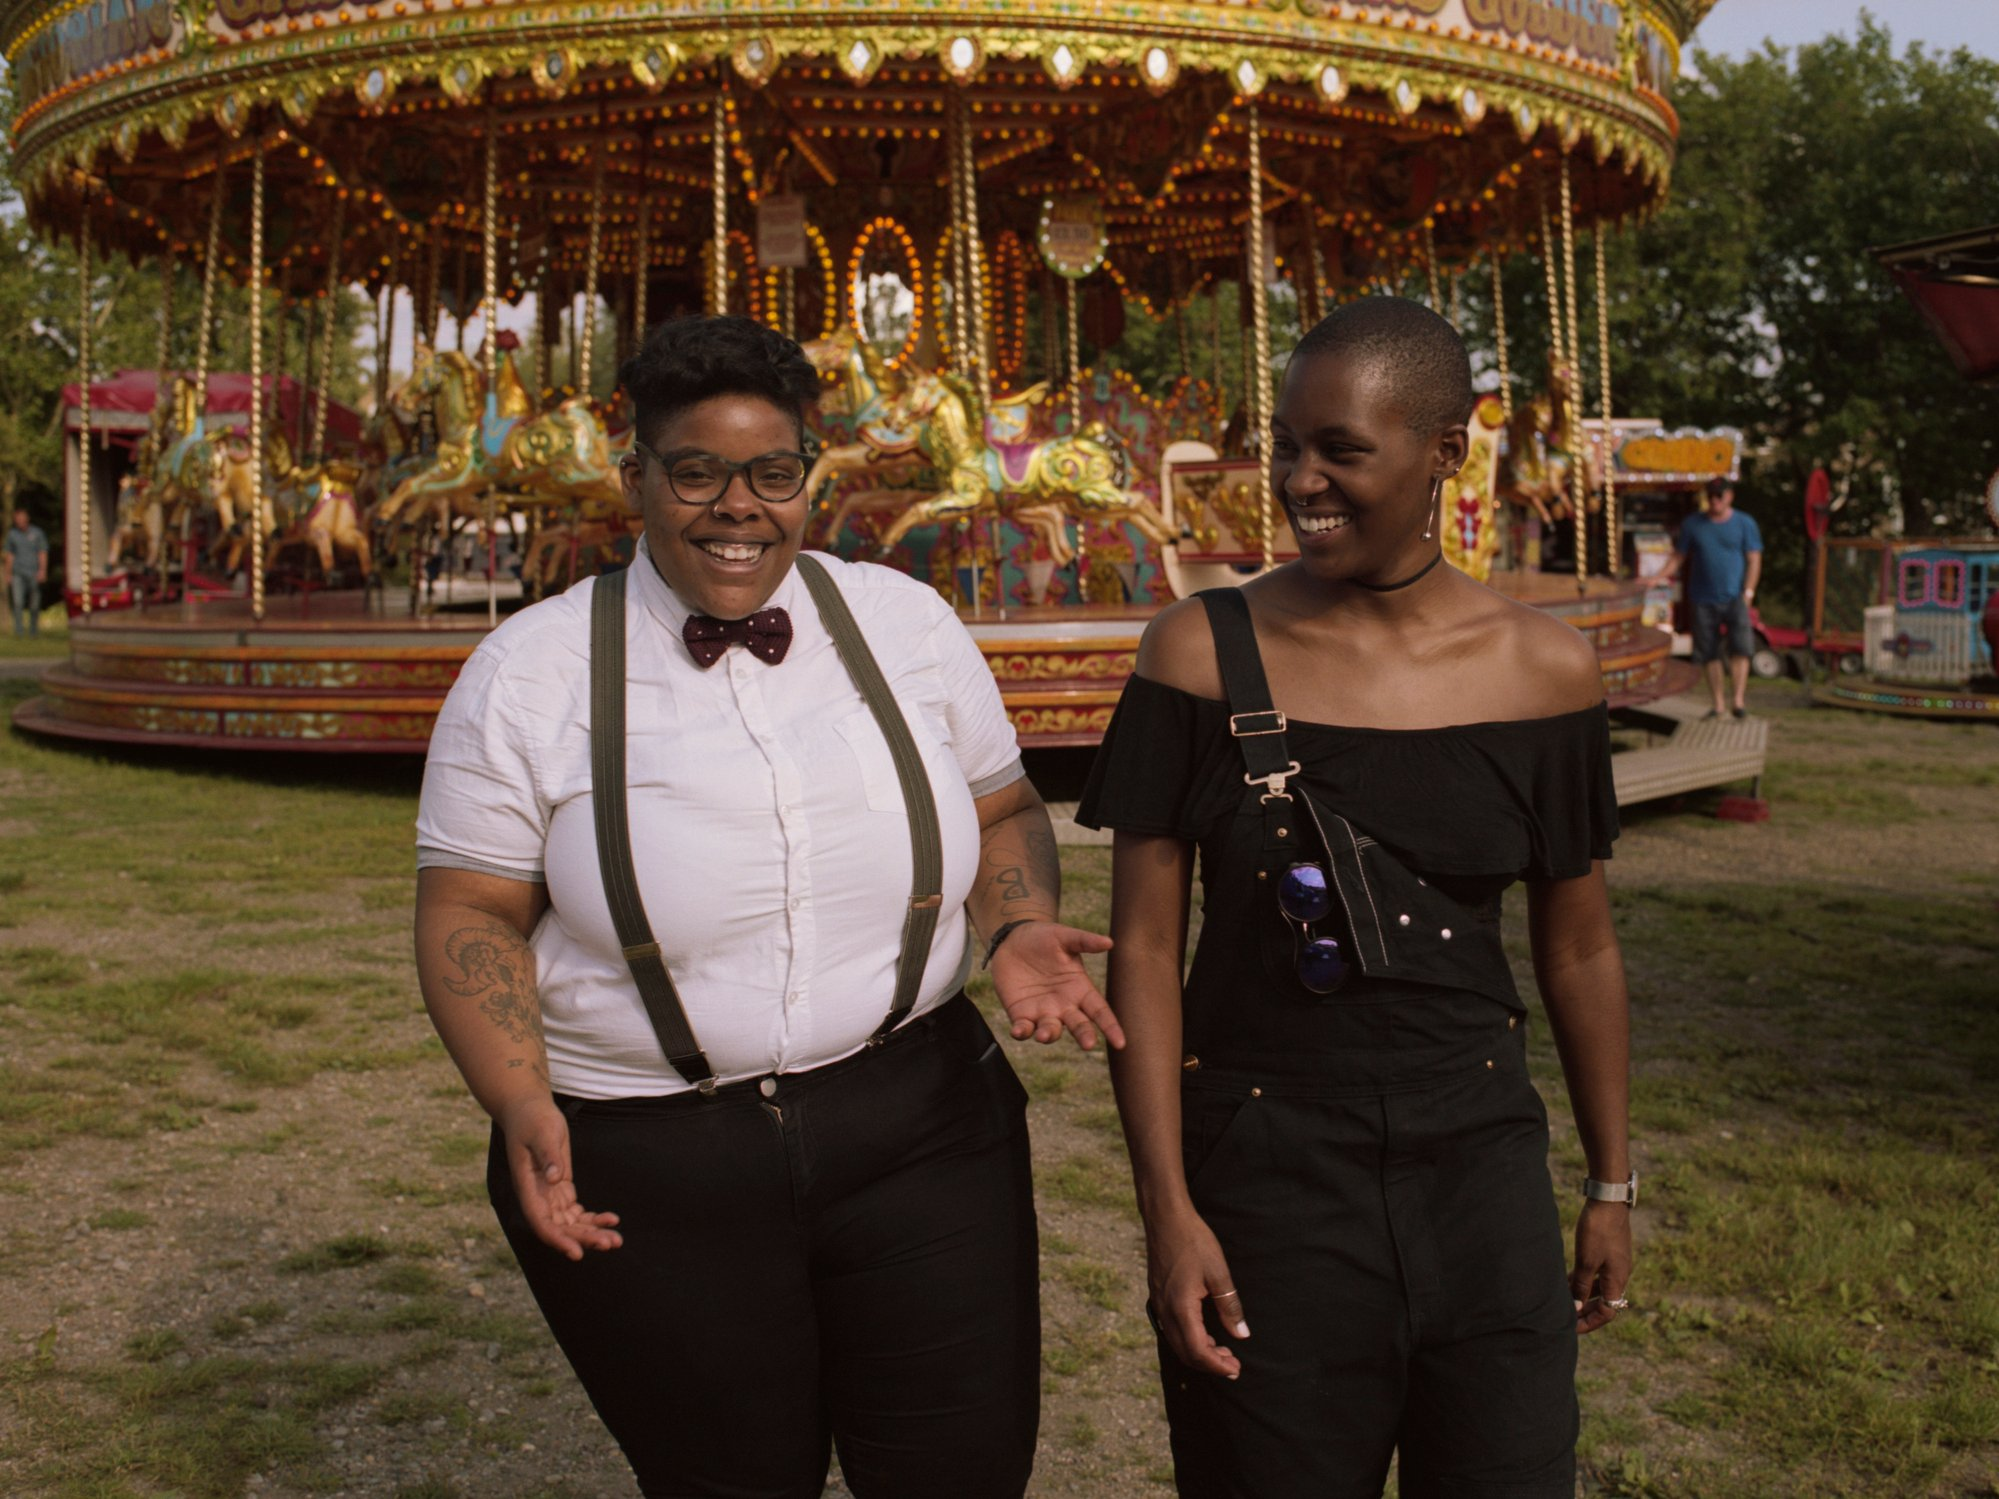 Two friends hanging out at a fairground